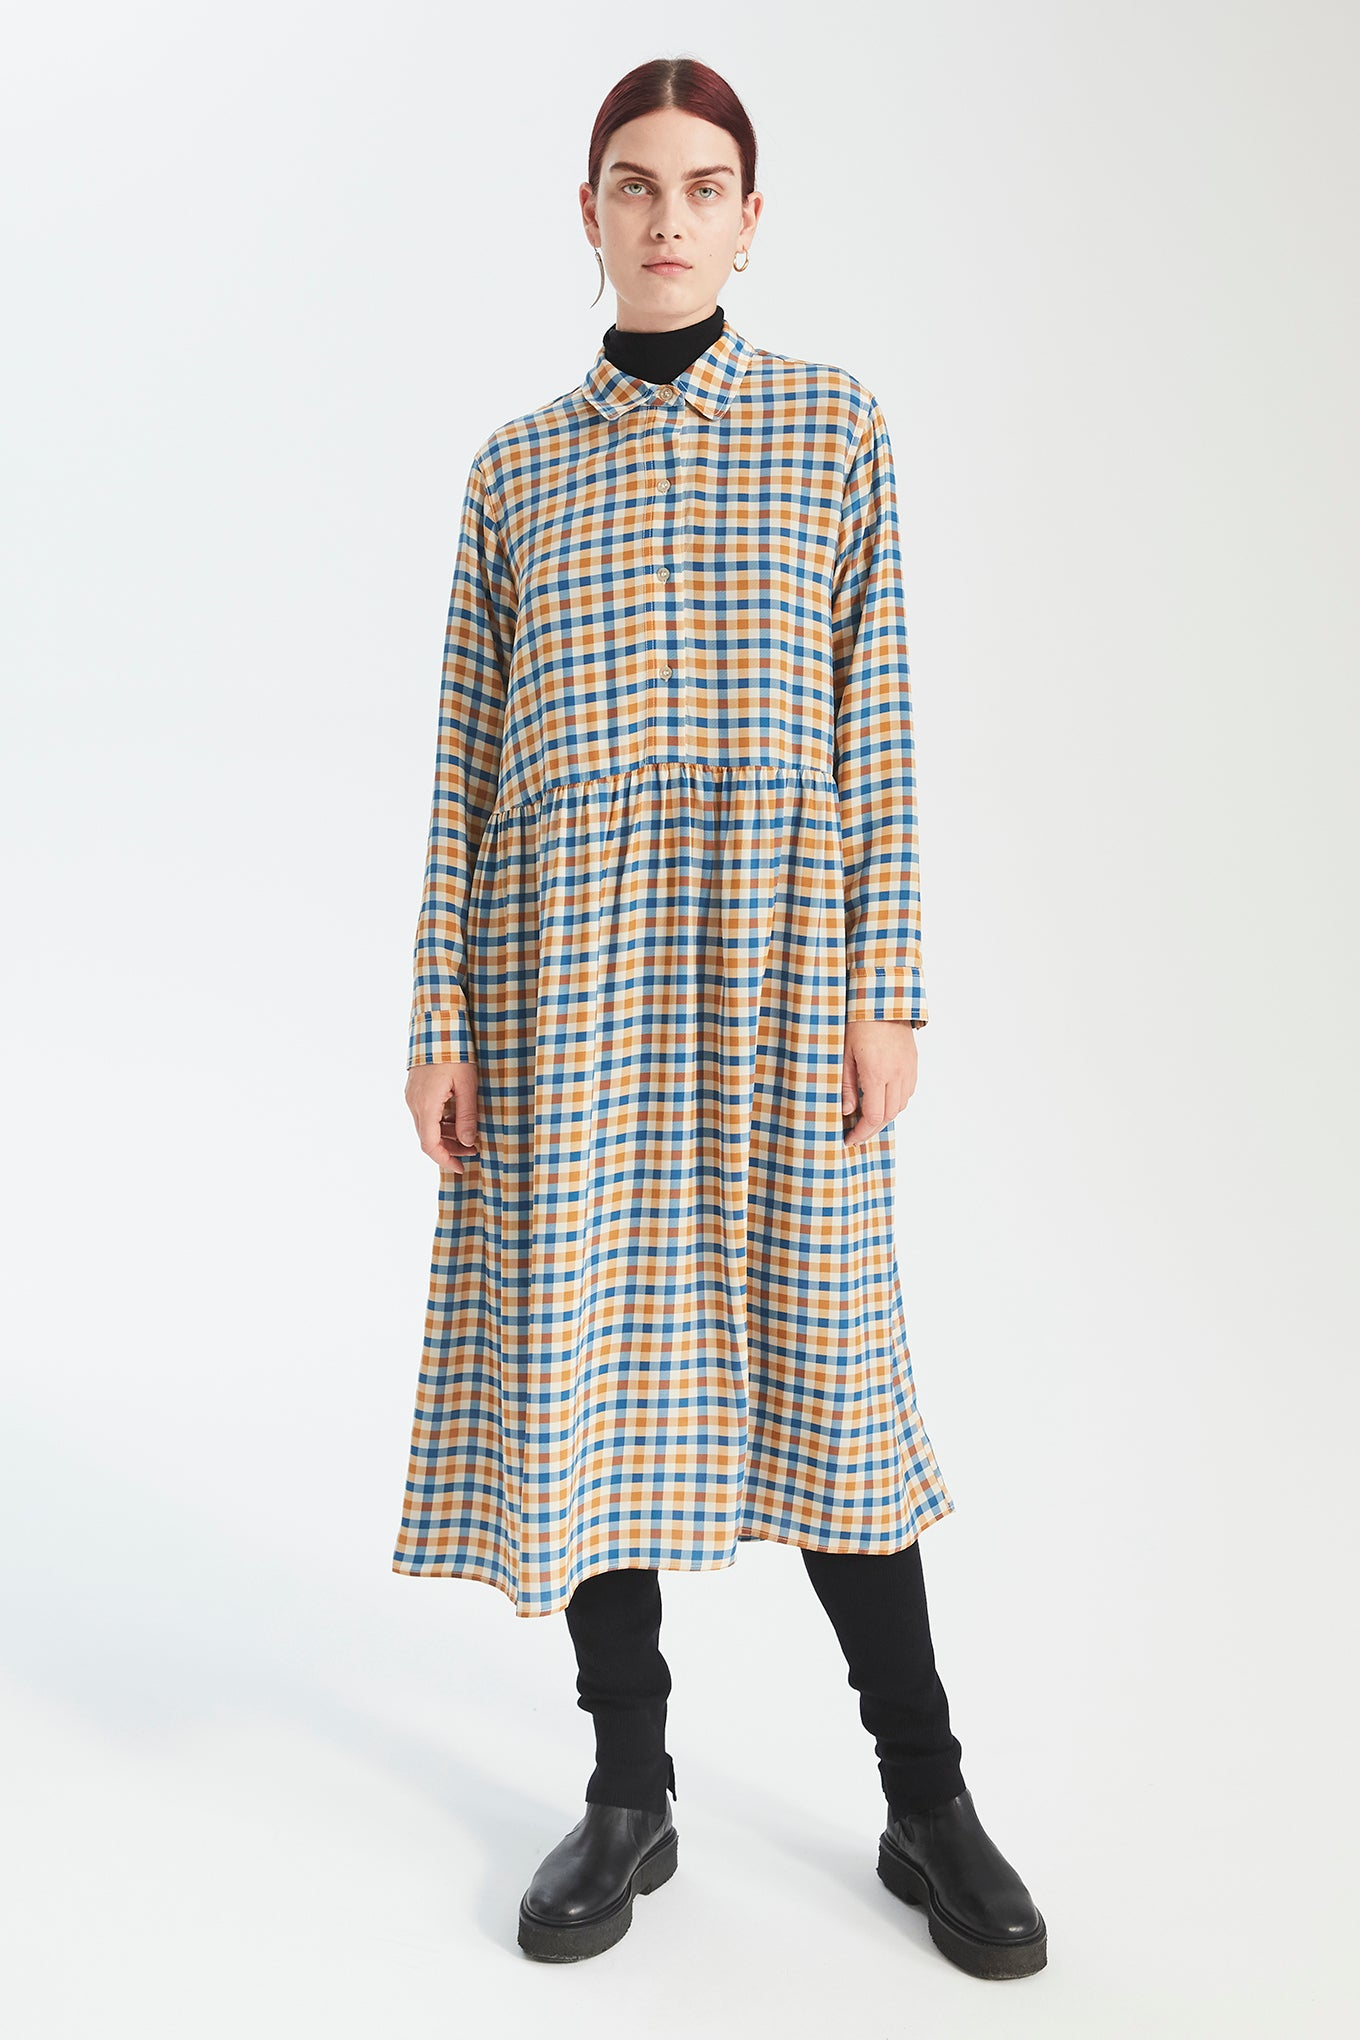 Ezra Dress - Tricolour Check